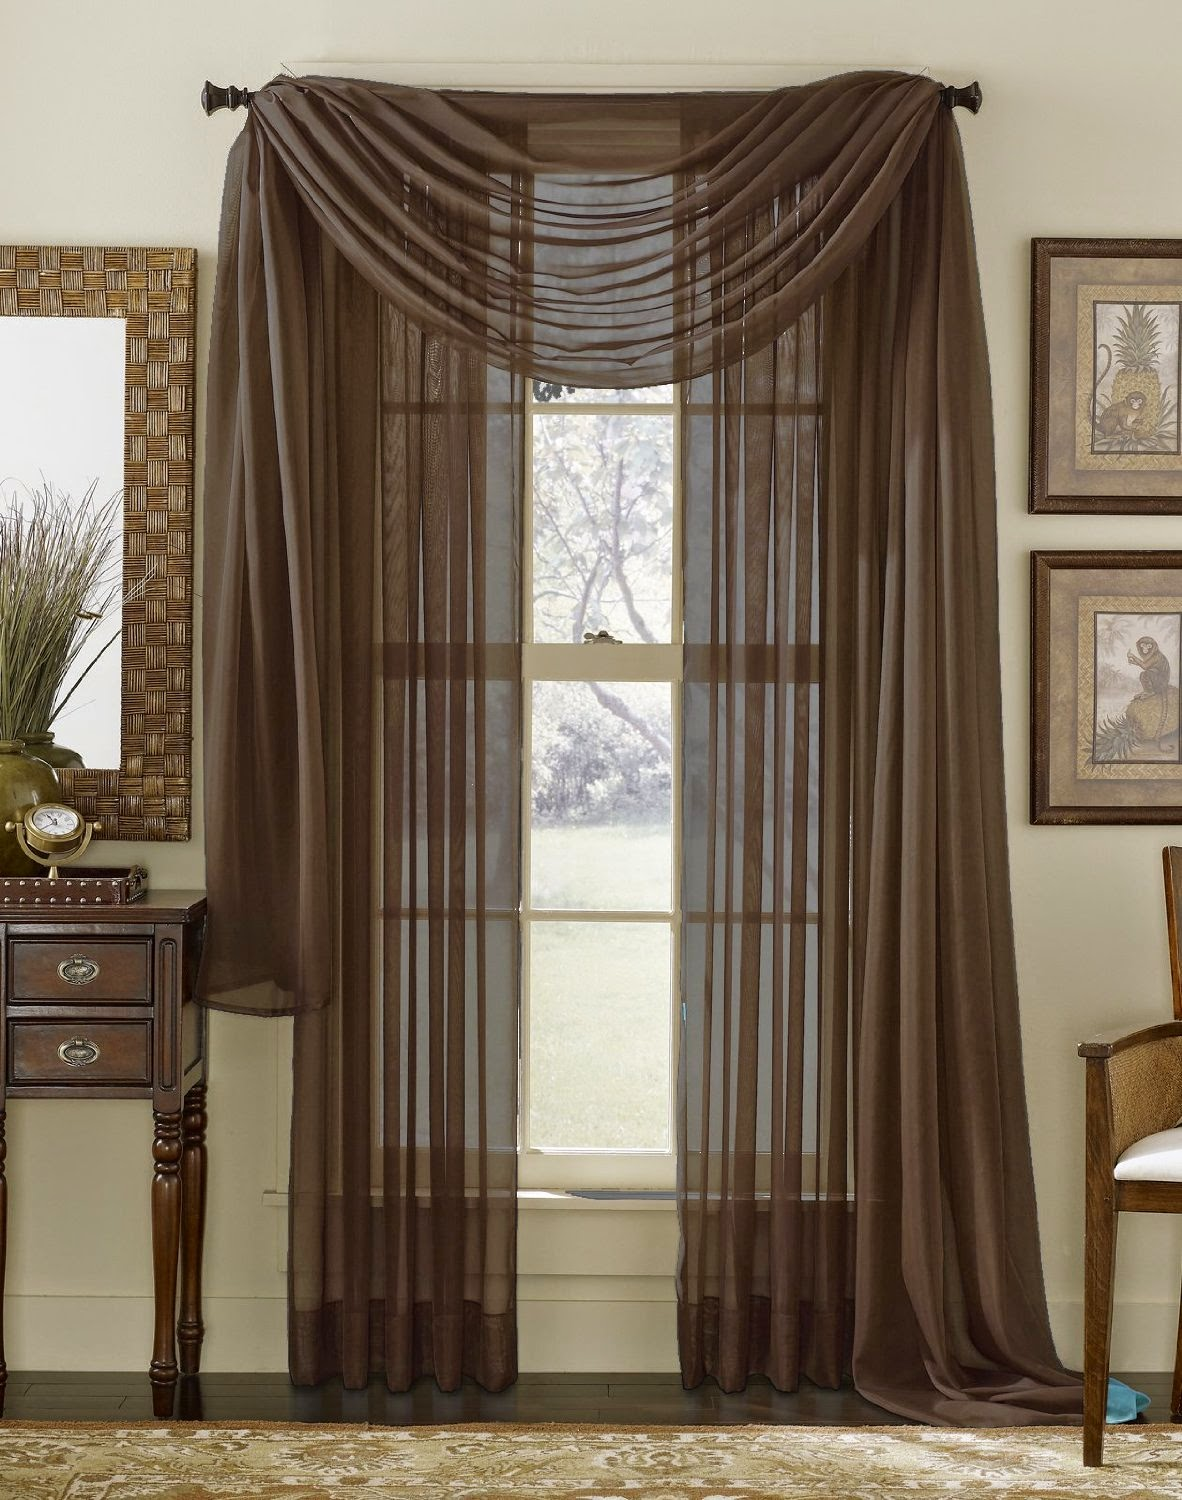 window brown blackout store curtains luxury for drapes living treatment product voile green room fashion finished quality customized ready curtain made golden tulle sheer purple